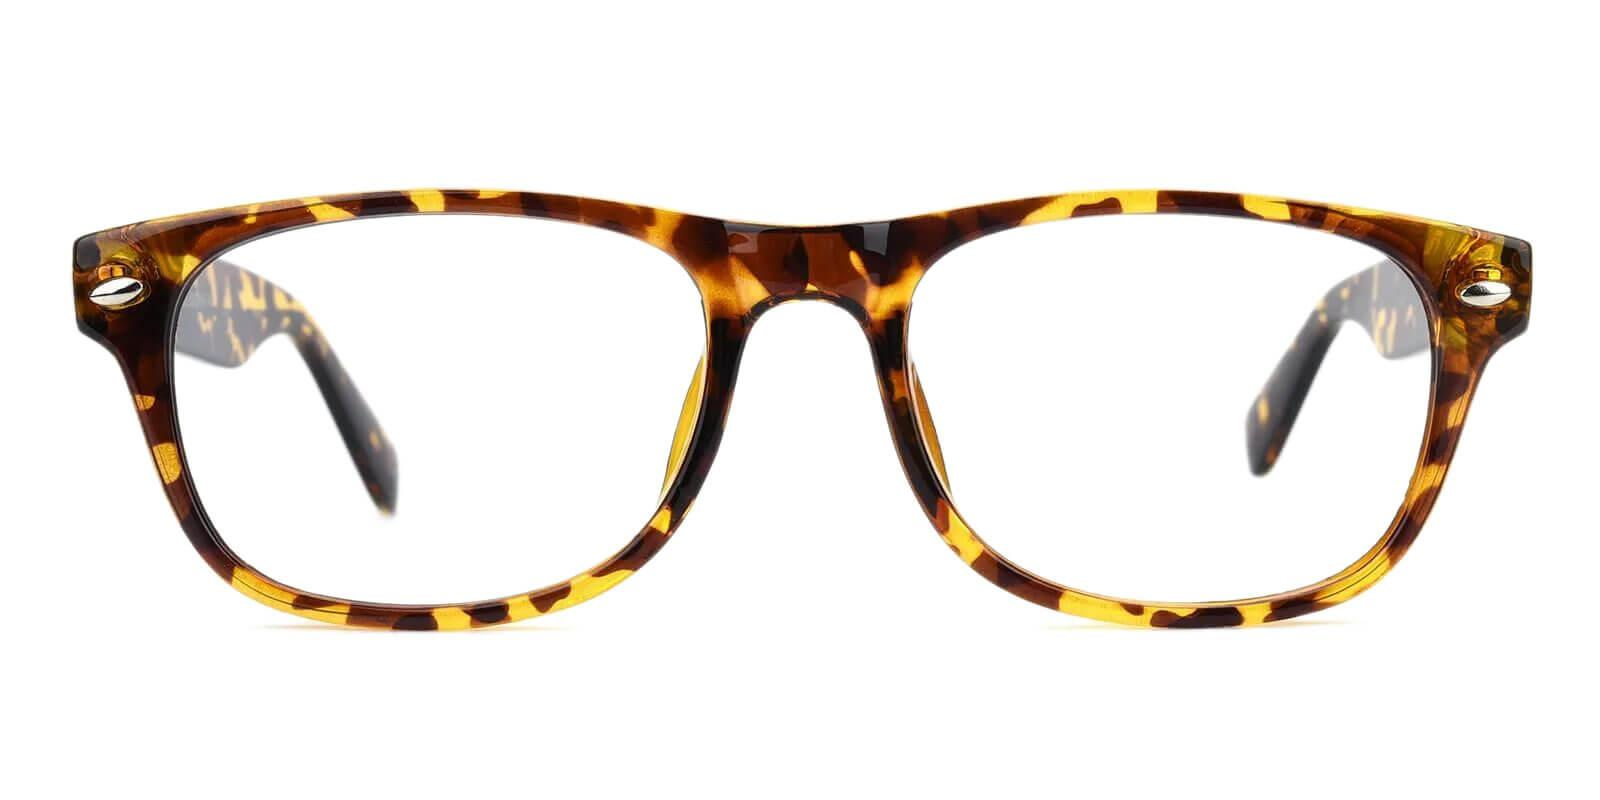 Mode Tortoise Plastic Eyeglasses , UniversalBridgeFit Frames from ABBE Glasses